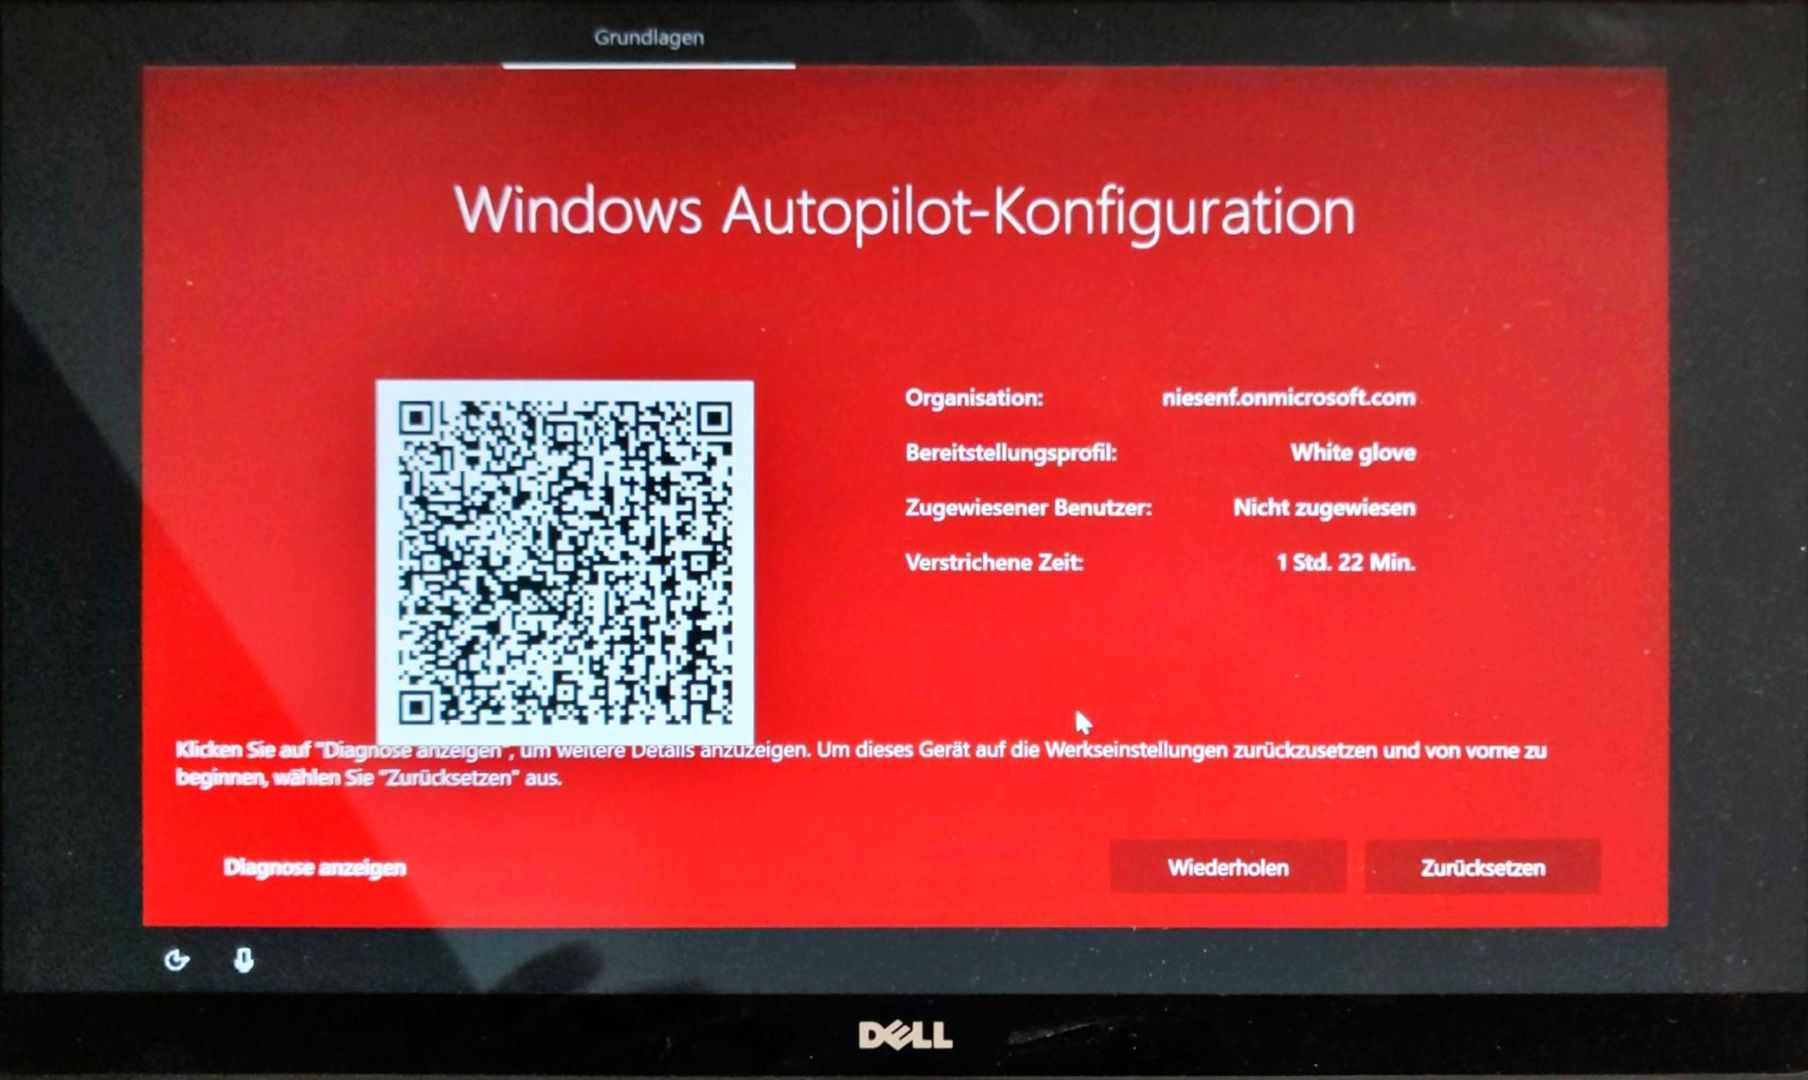 062519 0830 NeuesbeiAut9 New for Autopilot with Windows 10 1903 (Updated) 17